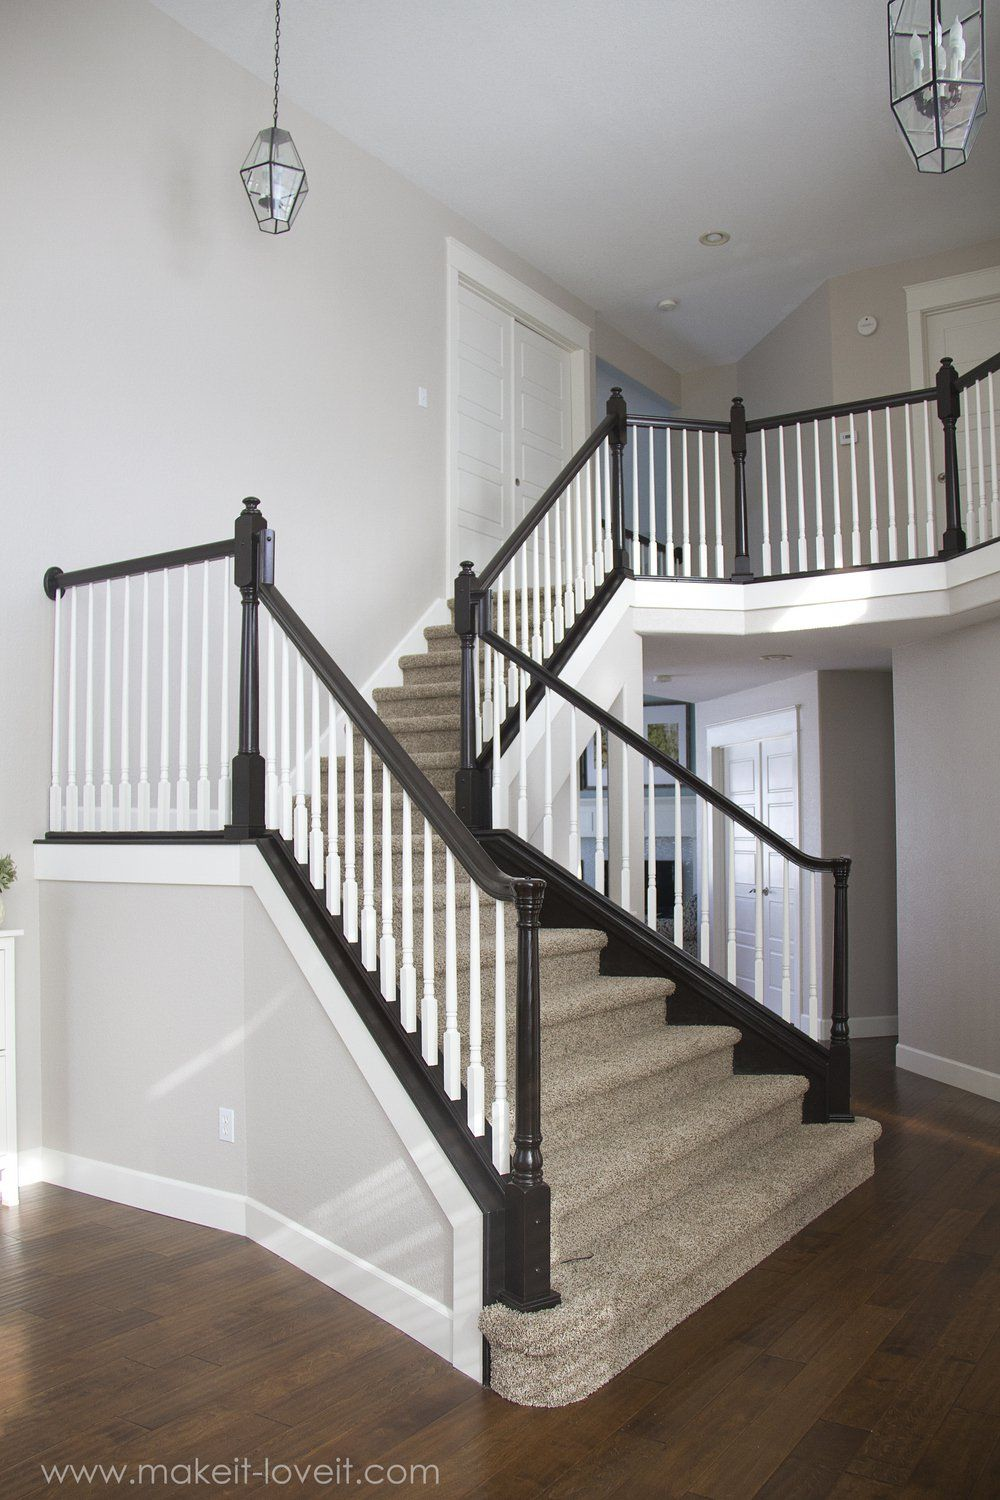 Best How To Stain Paint An Oak Banister The Shortcut Method…No 640 x 480